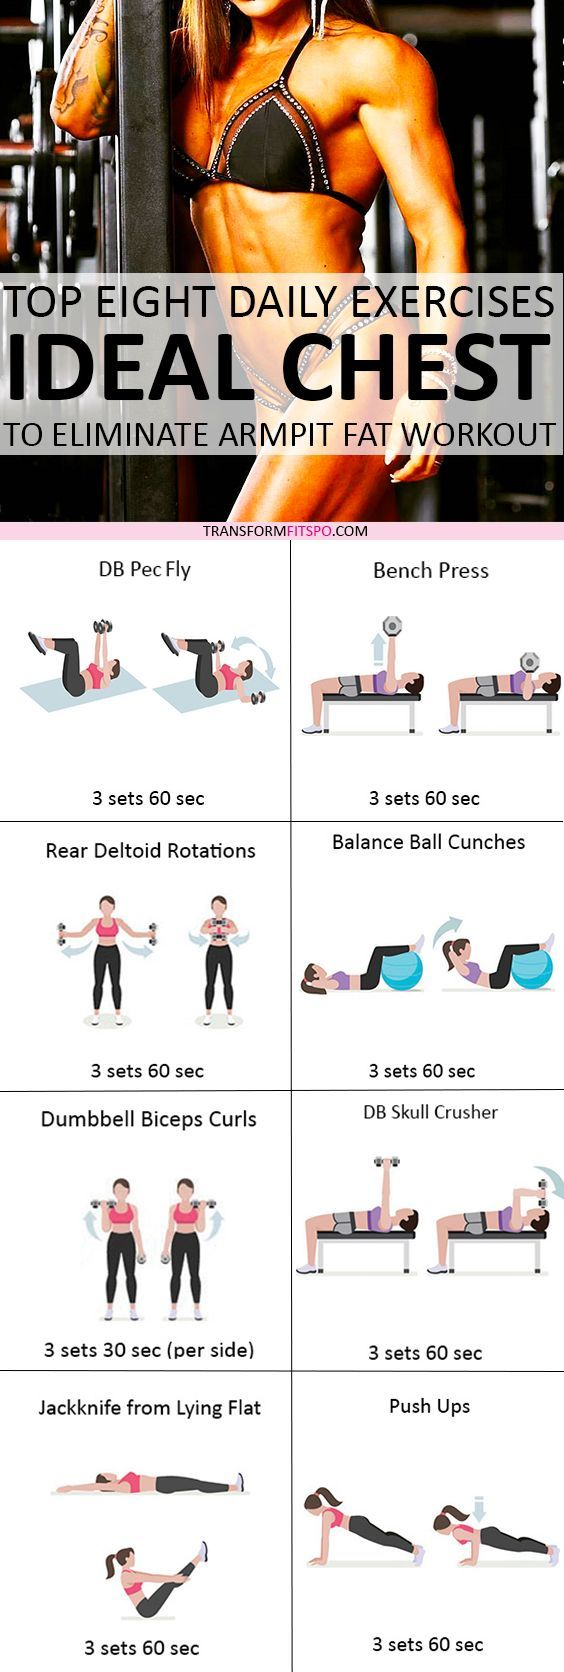 Repin and share if this workout got you in crazy shape! Read the post for all the exercises.